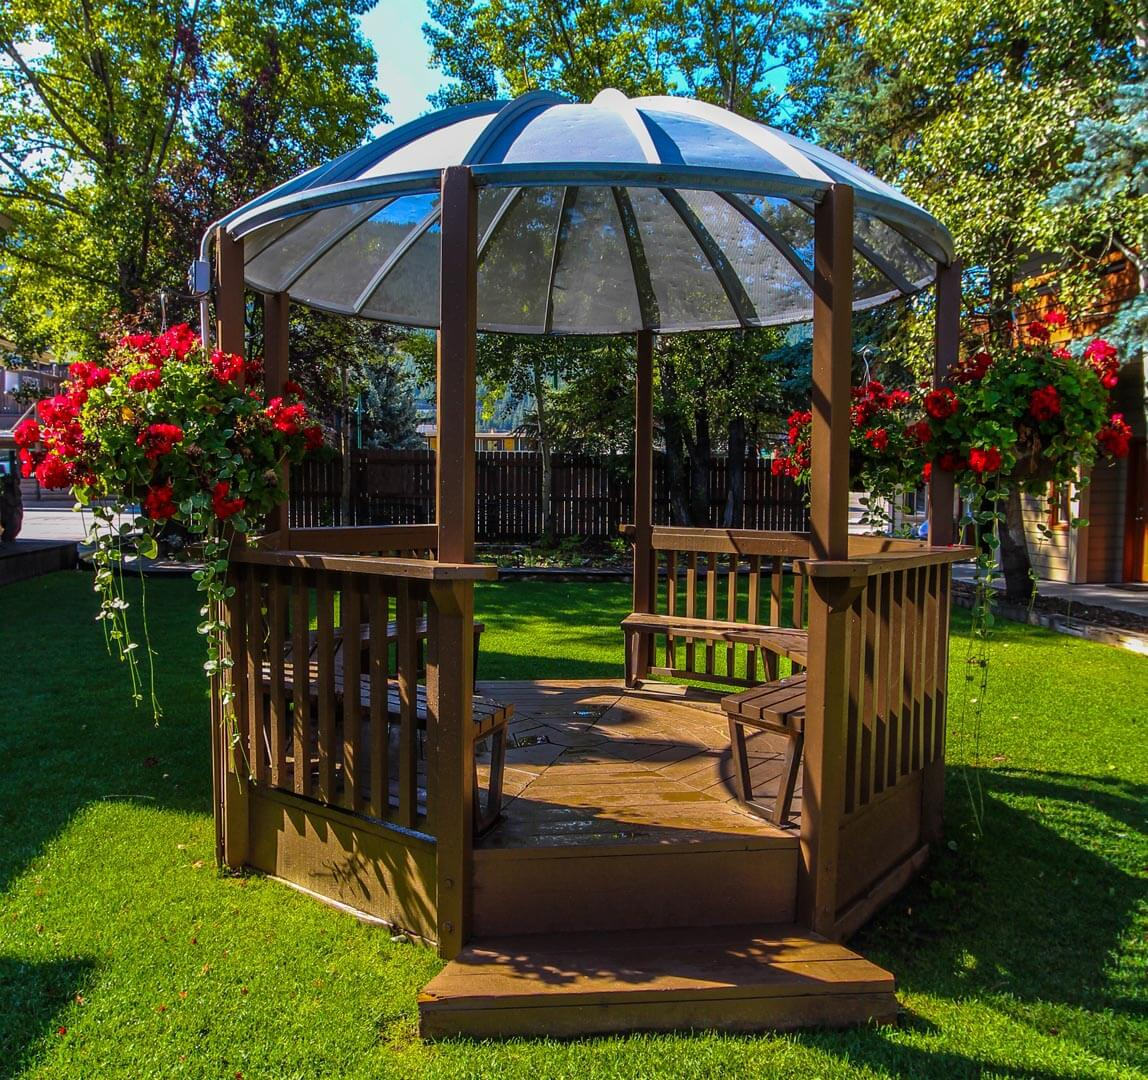 A relaxing outdoor Gazebo at VRI's Jackson Hole Towncenter in Wyoming.